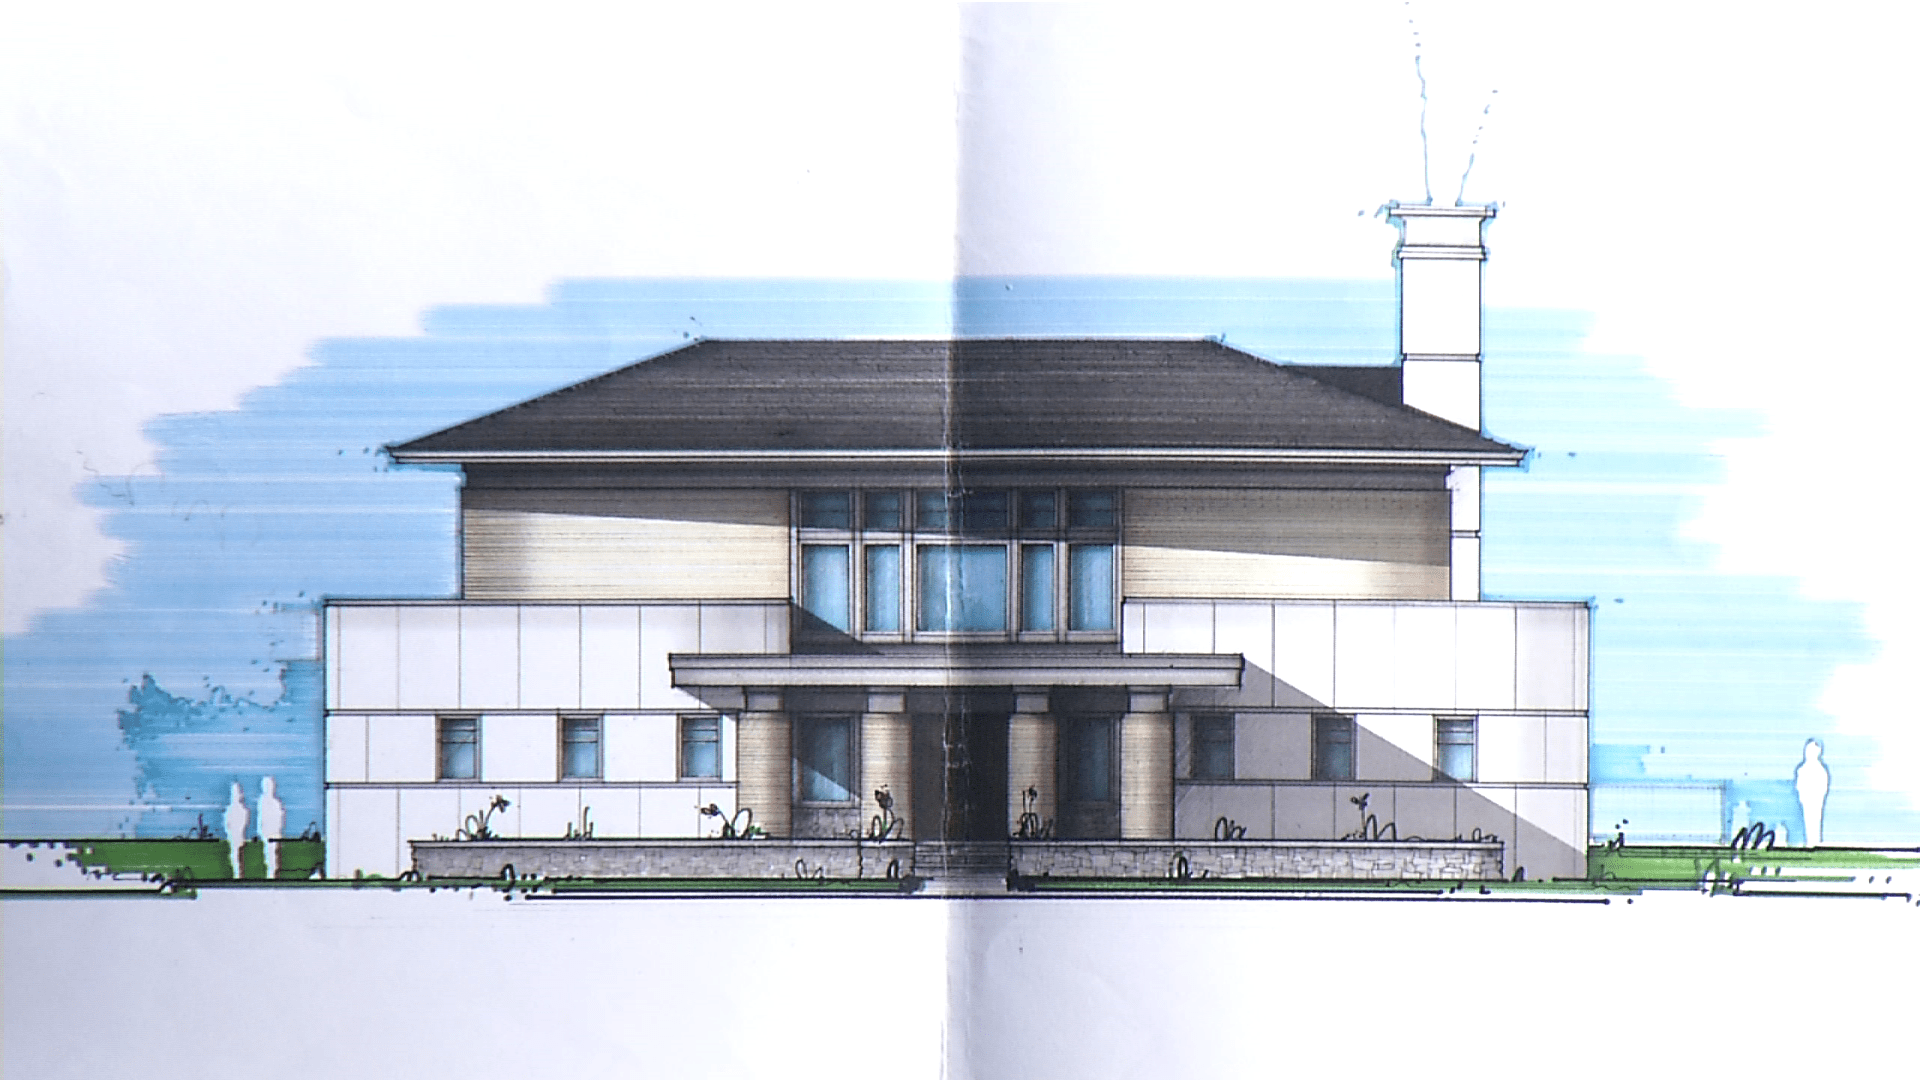 Governor's Mansion-Plans for New One_1539724888620.png.jpg